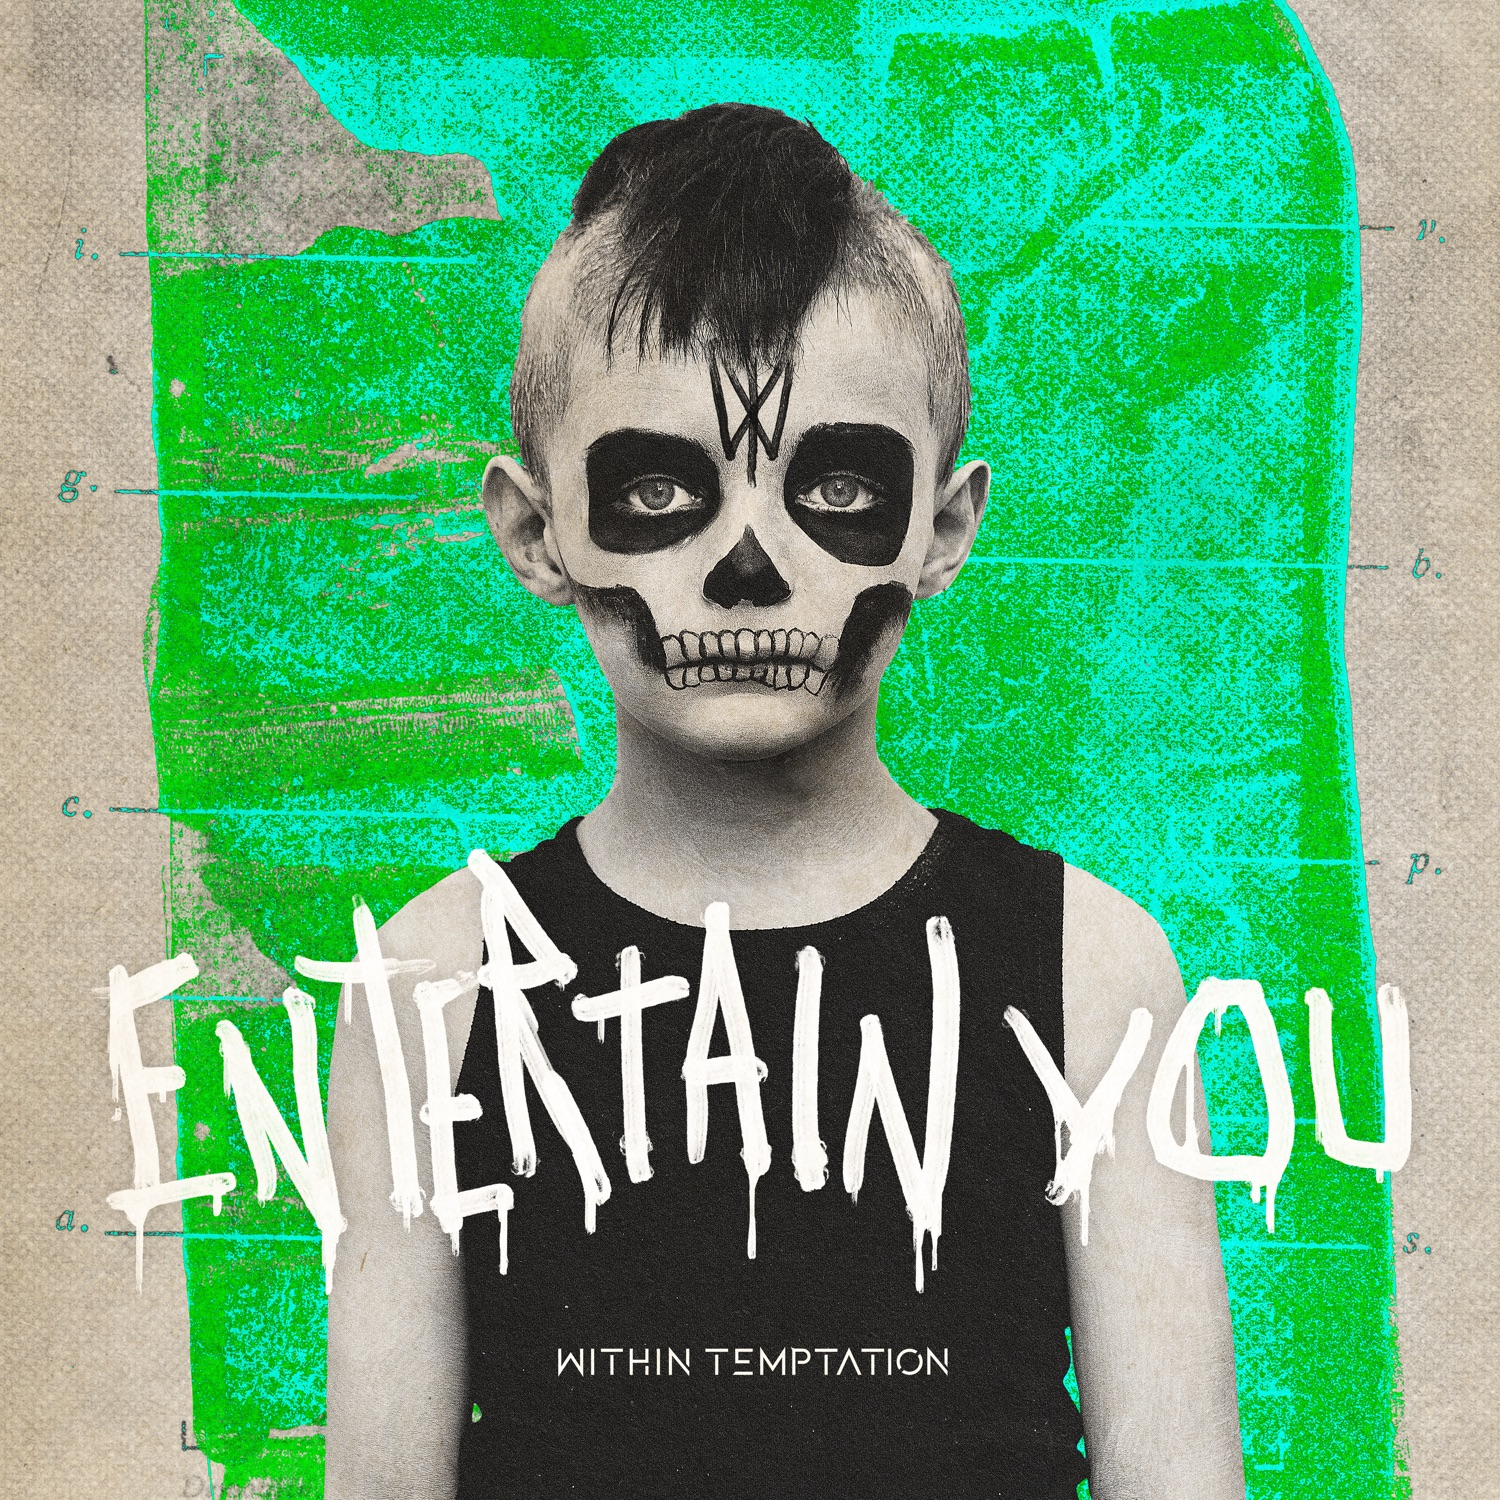 Within Temptation single 2020 Entertain You Album